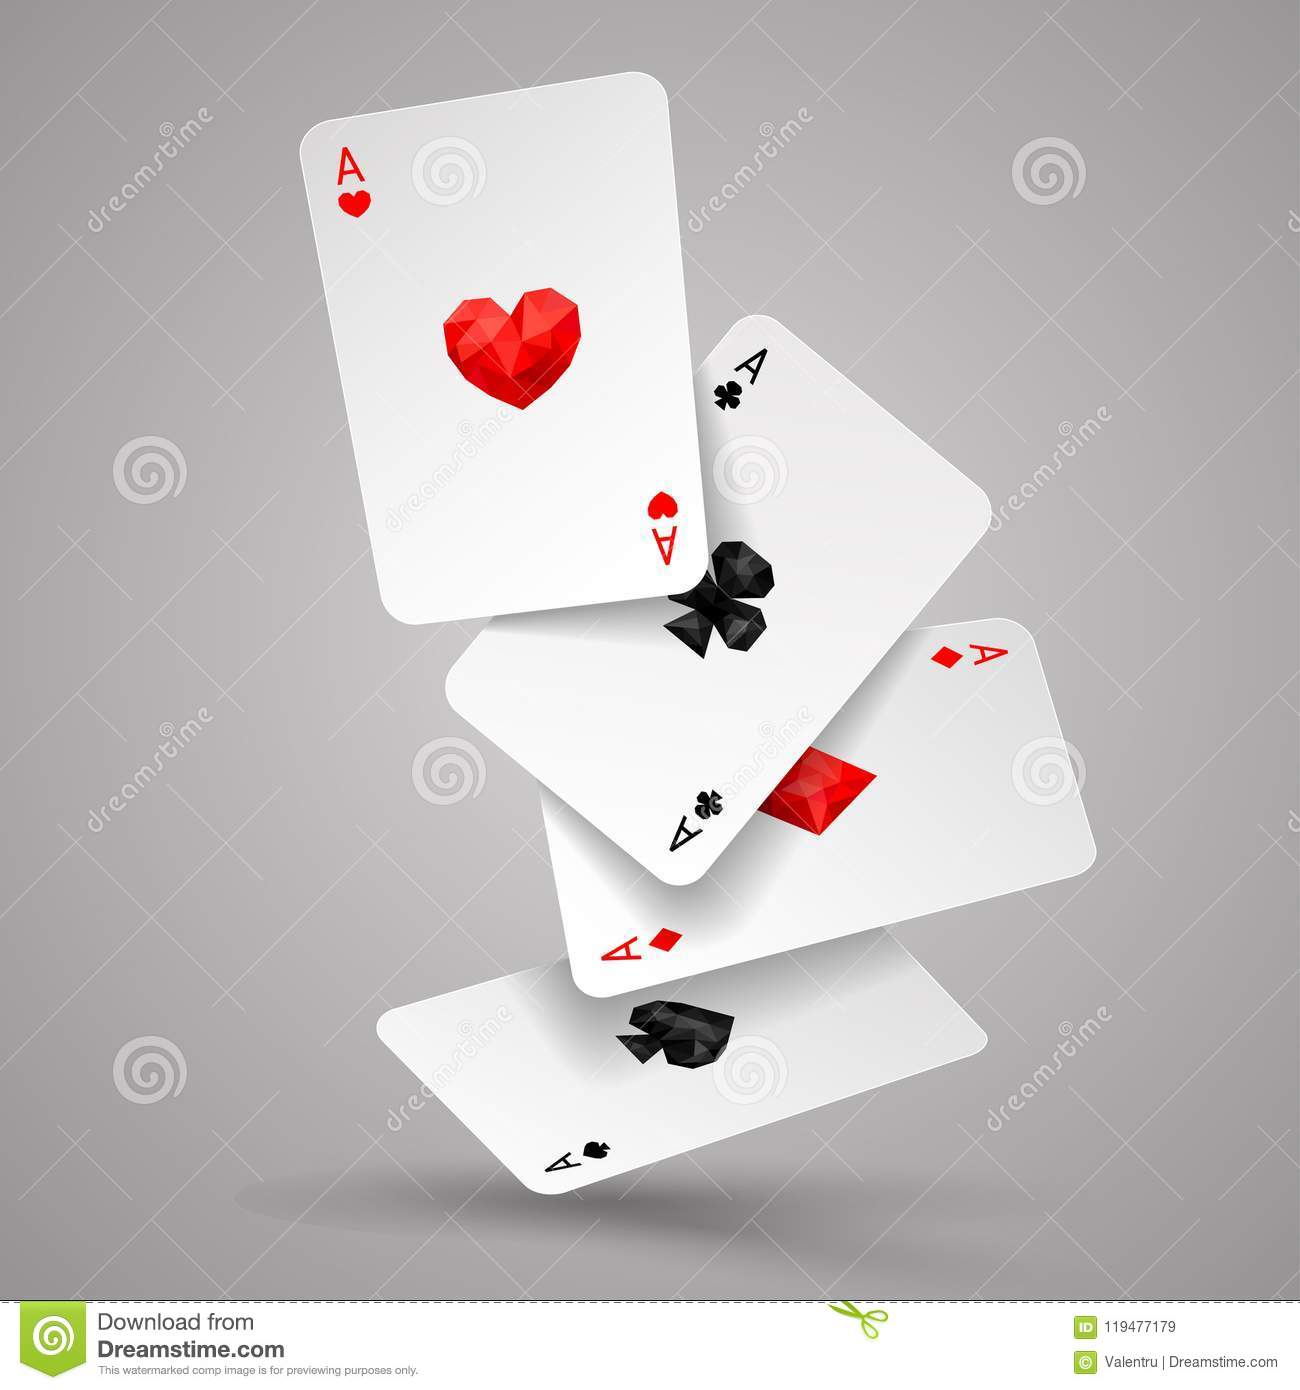 Set of four ace playing cards fly or falling